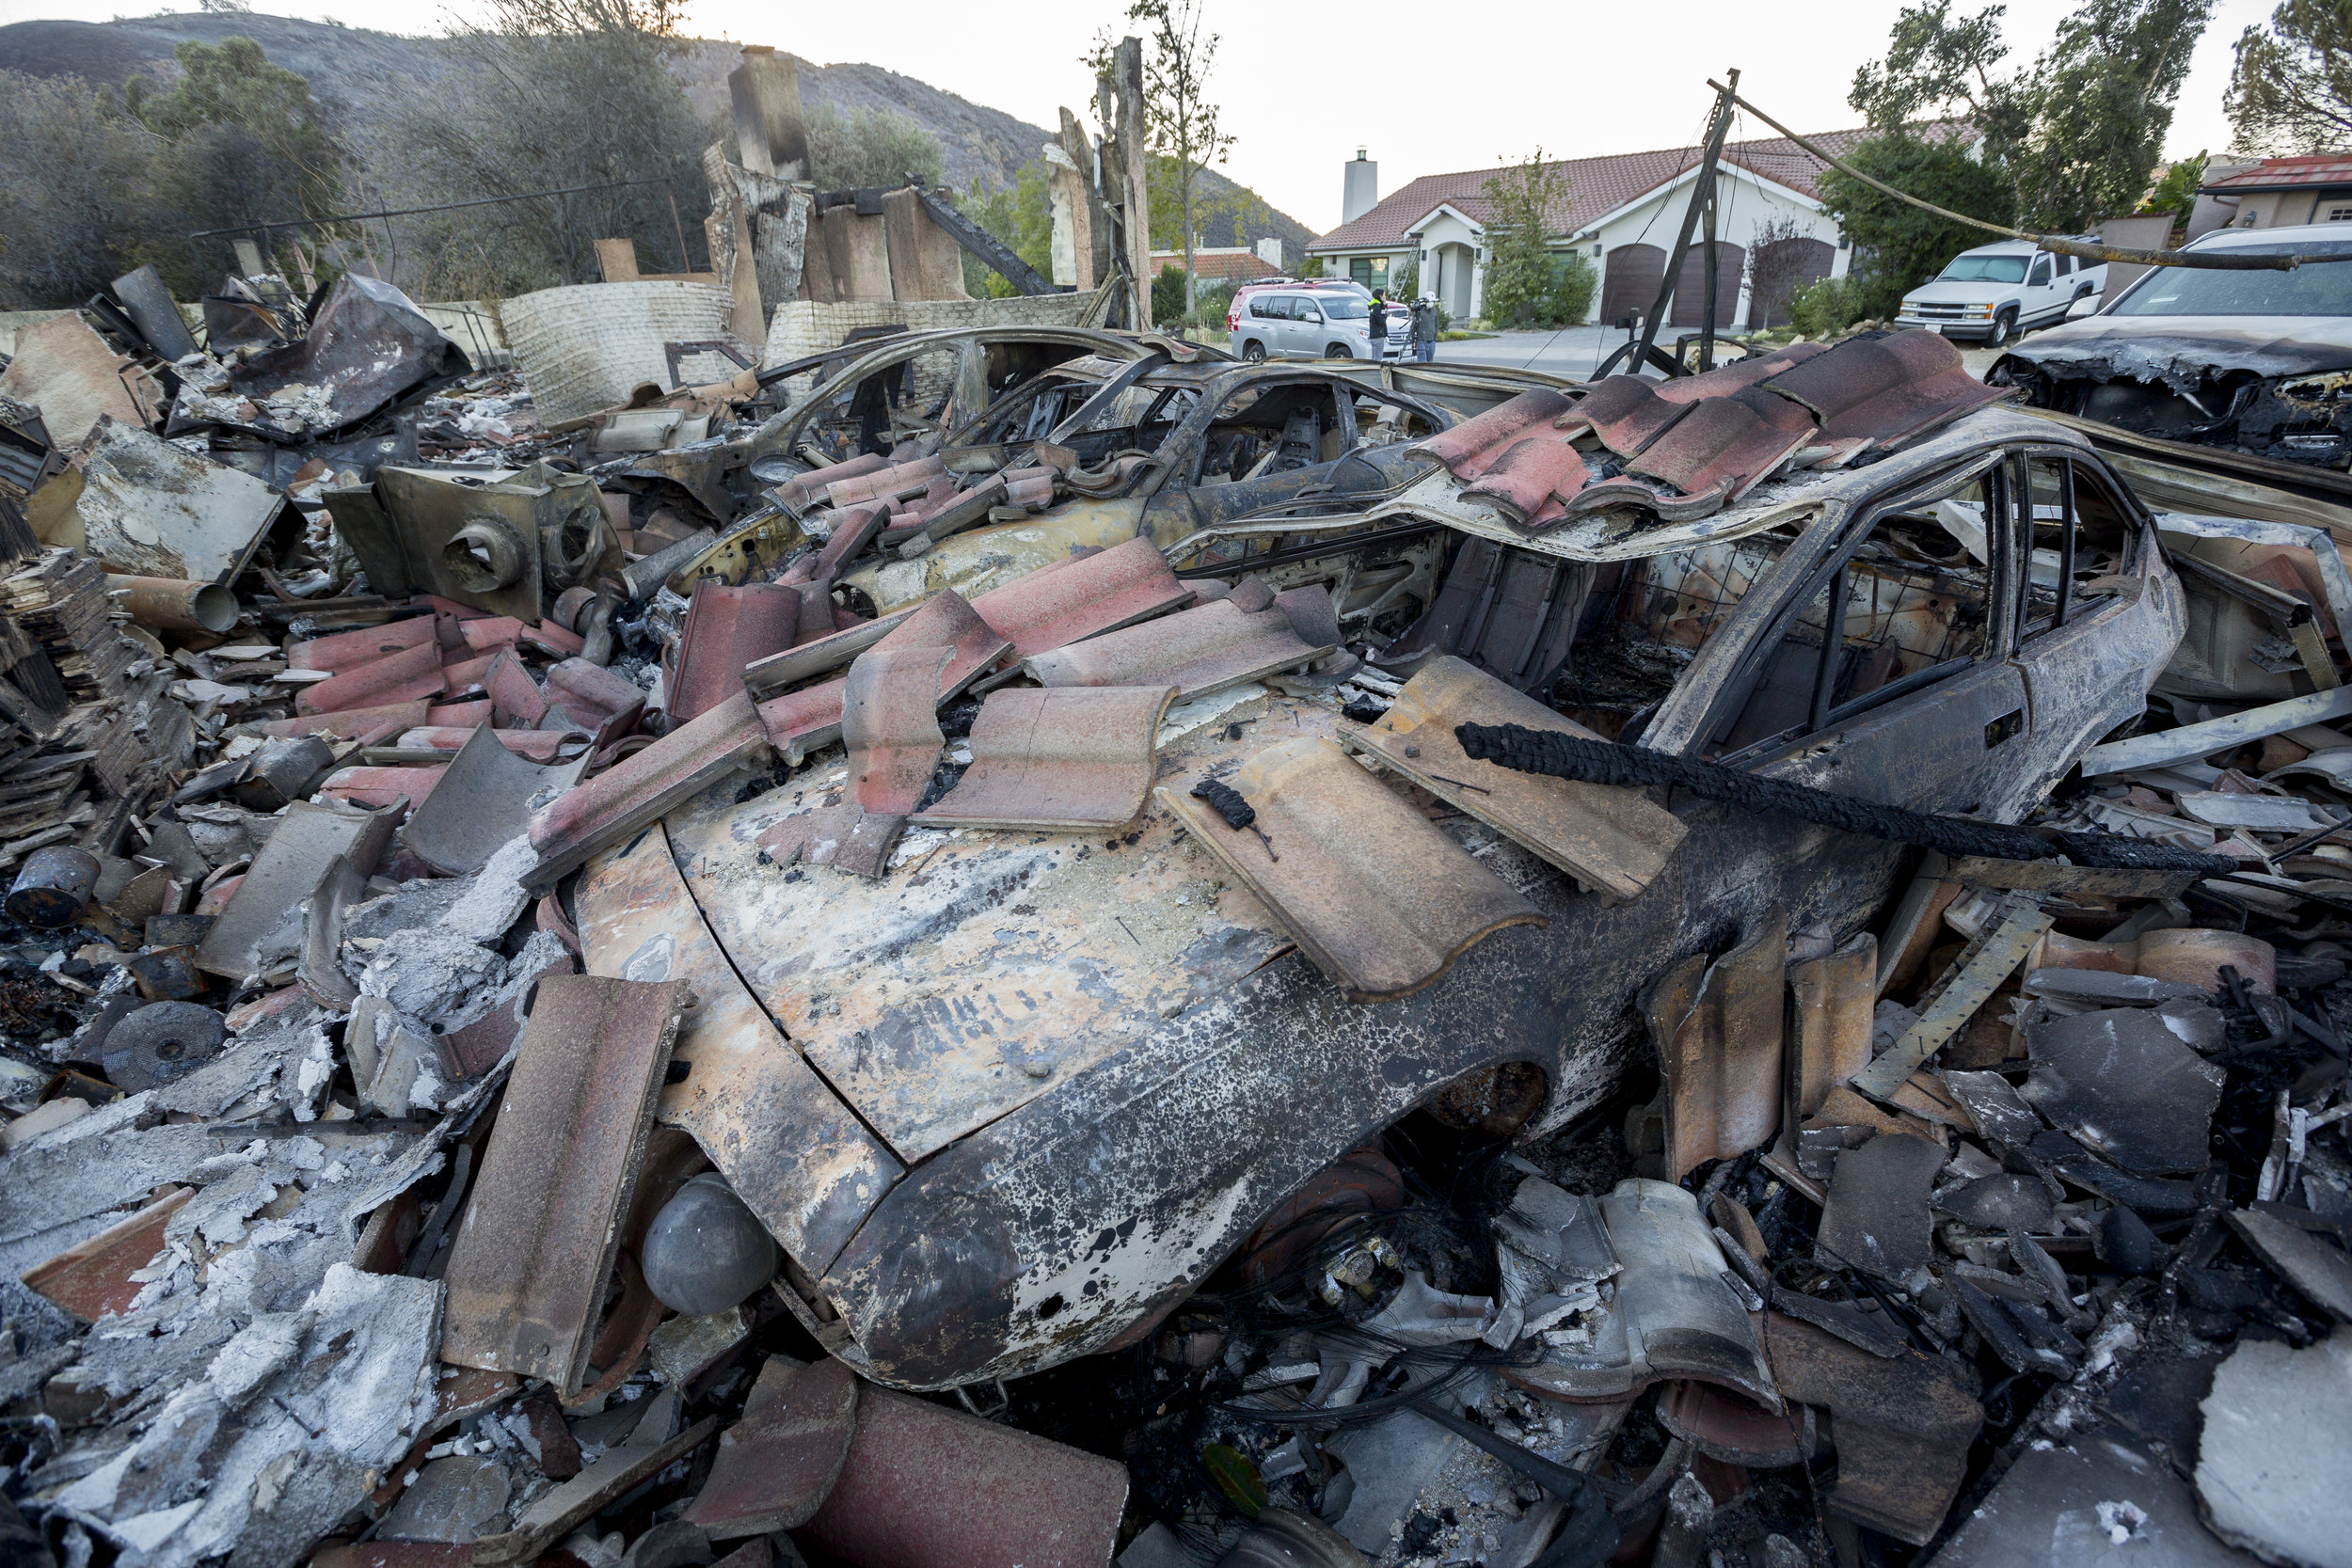 Cars burned out by the Woolsey fire sit under the rubble of a garage along Flintlock Lane on November 12, 2018 in the Bell Canyon neighborhood of West Hills, Calif. (Jose Lopez)